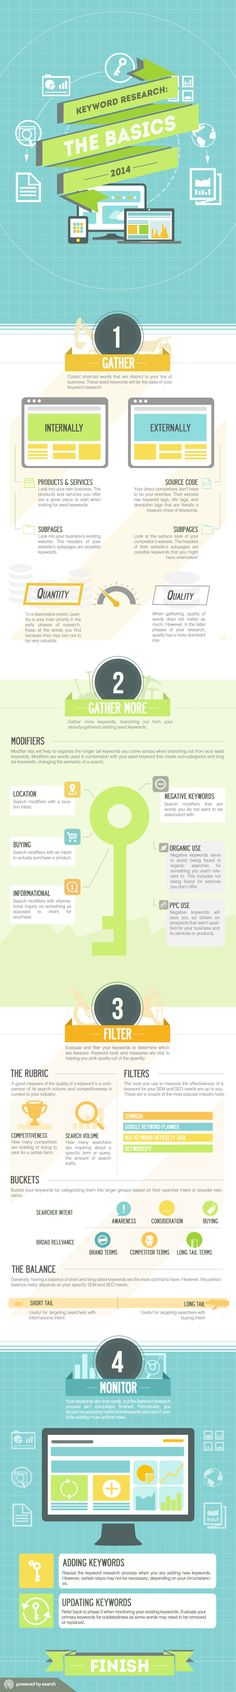 Keyword Research: The Basics 2014   #infographic #KeywordResearch #SEO